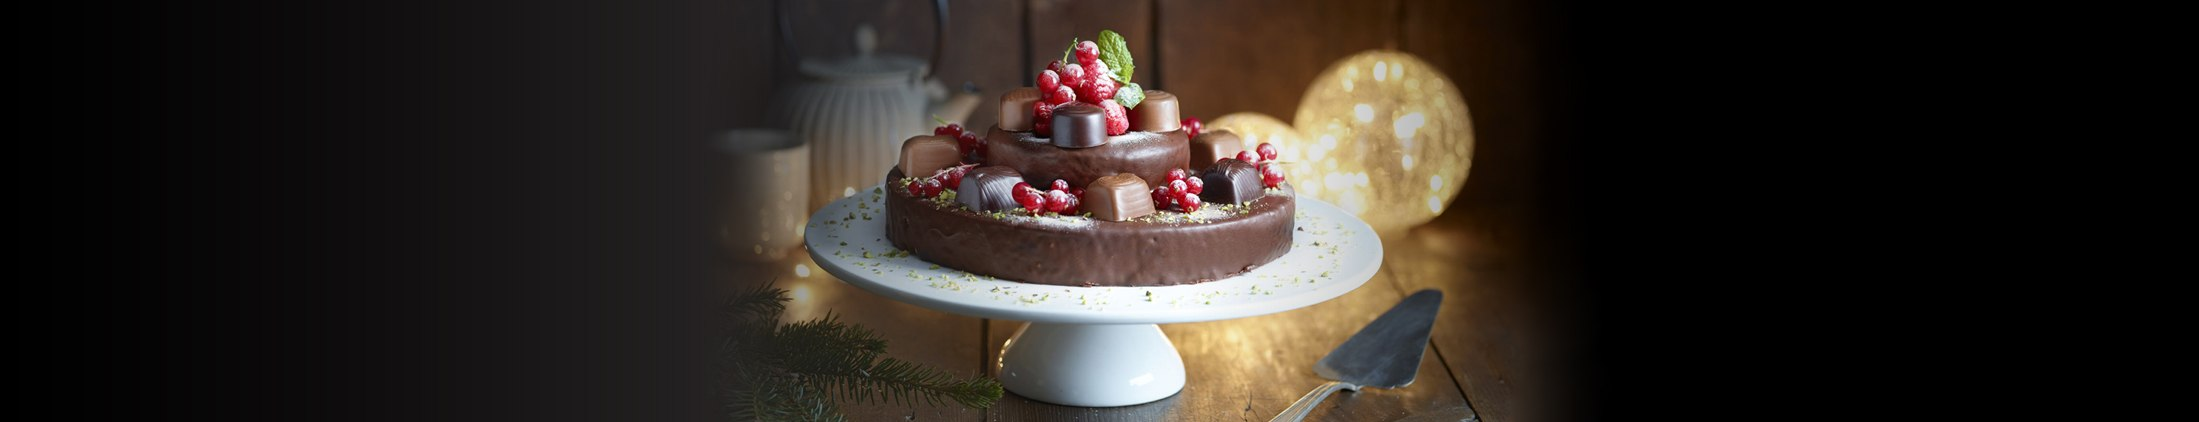 Heavenly chocolate desserts for the holiday season